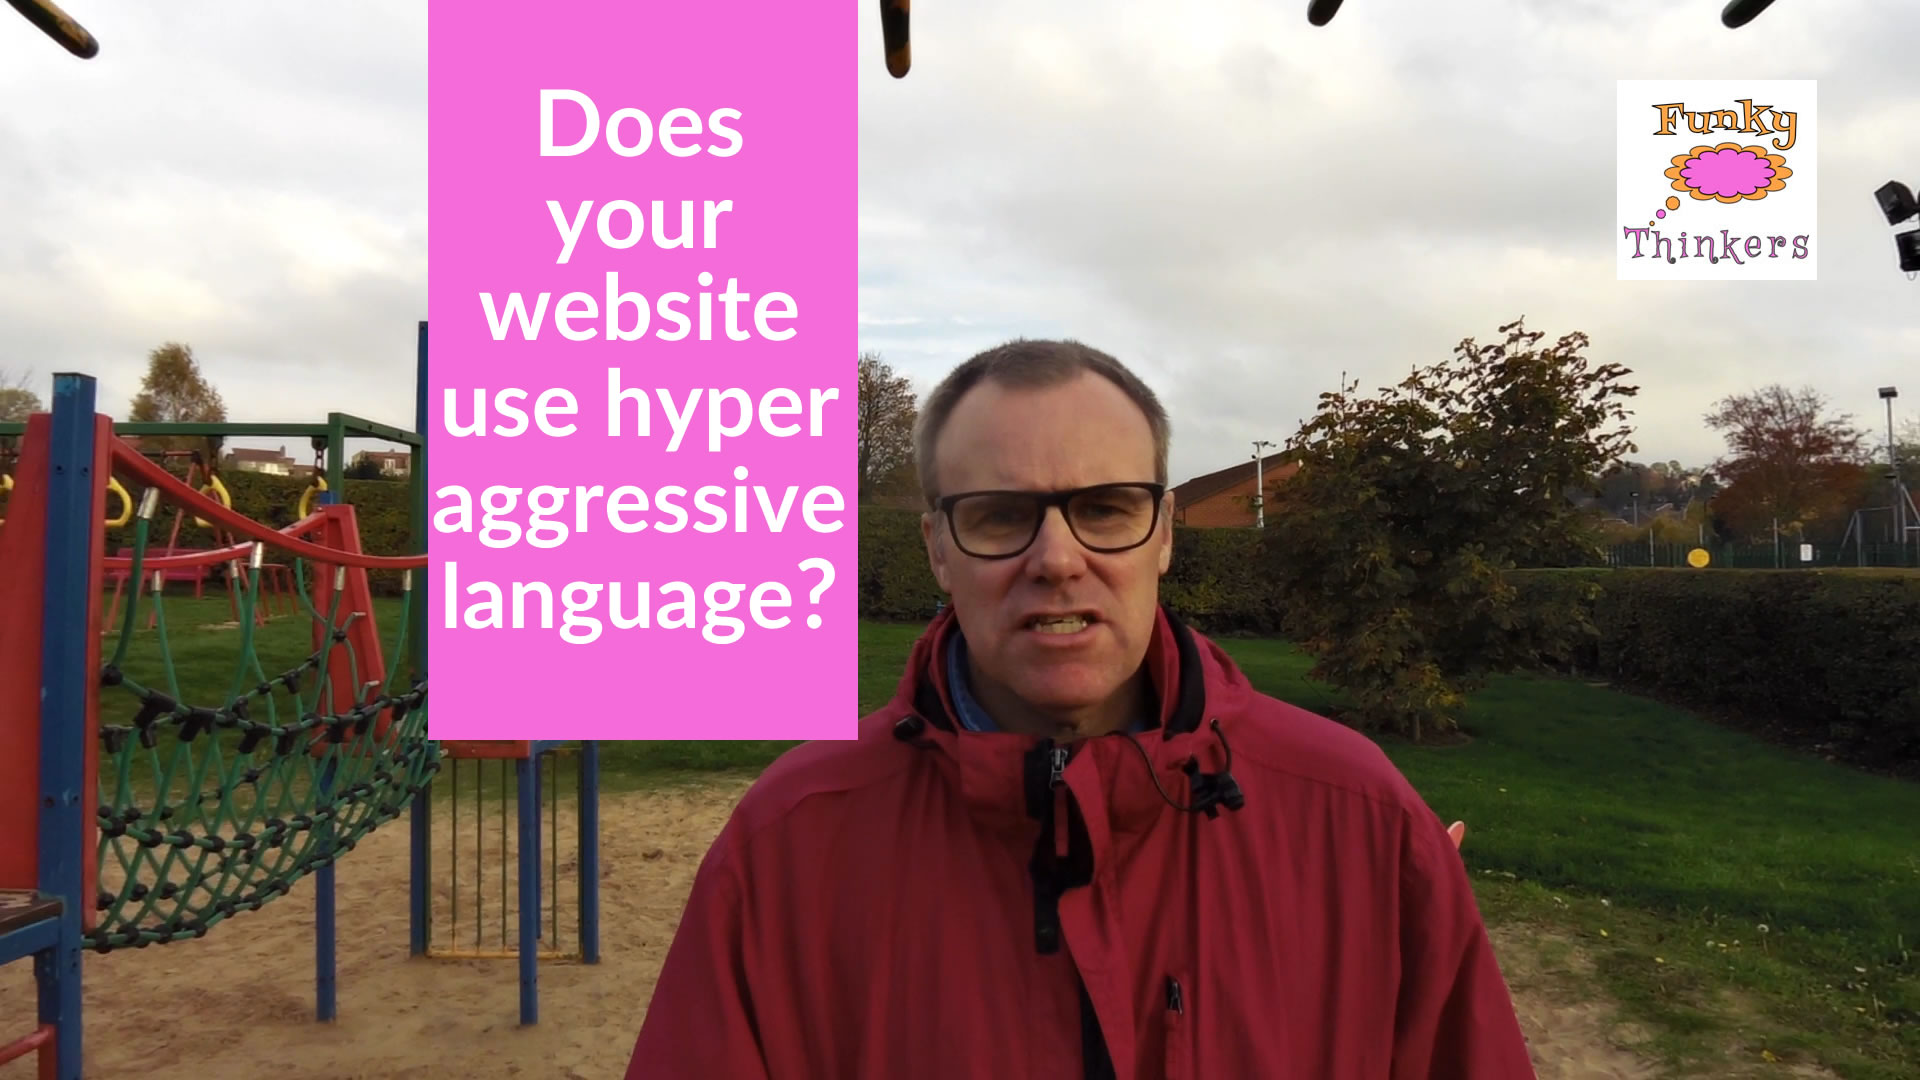 Does your website use hyper aggressive language?